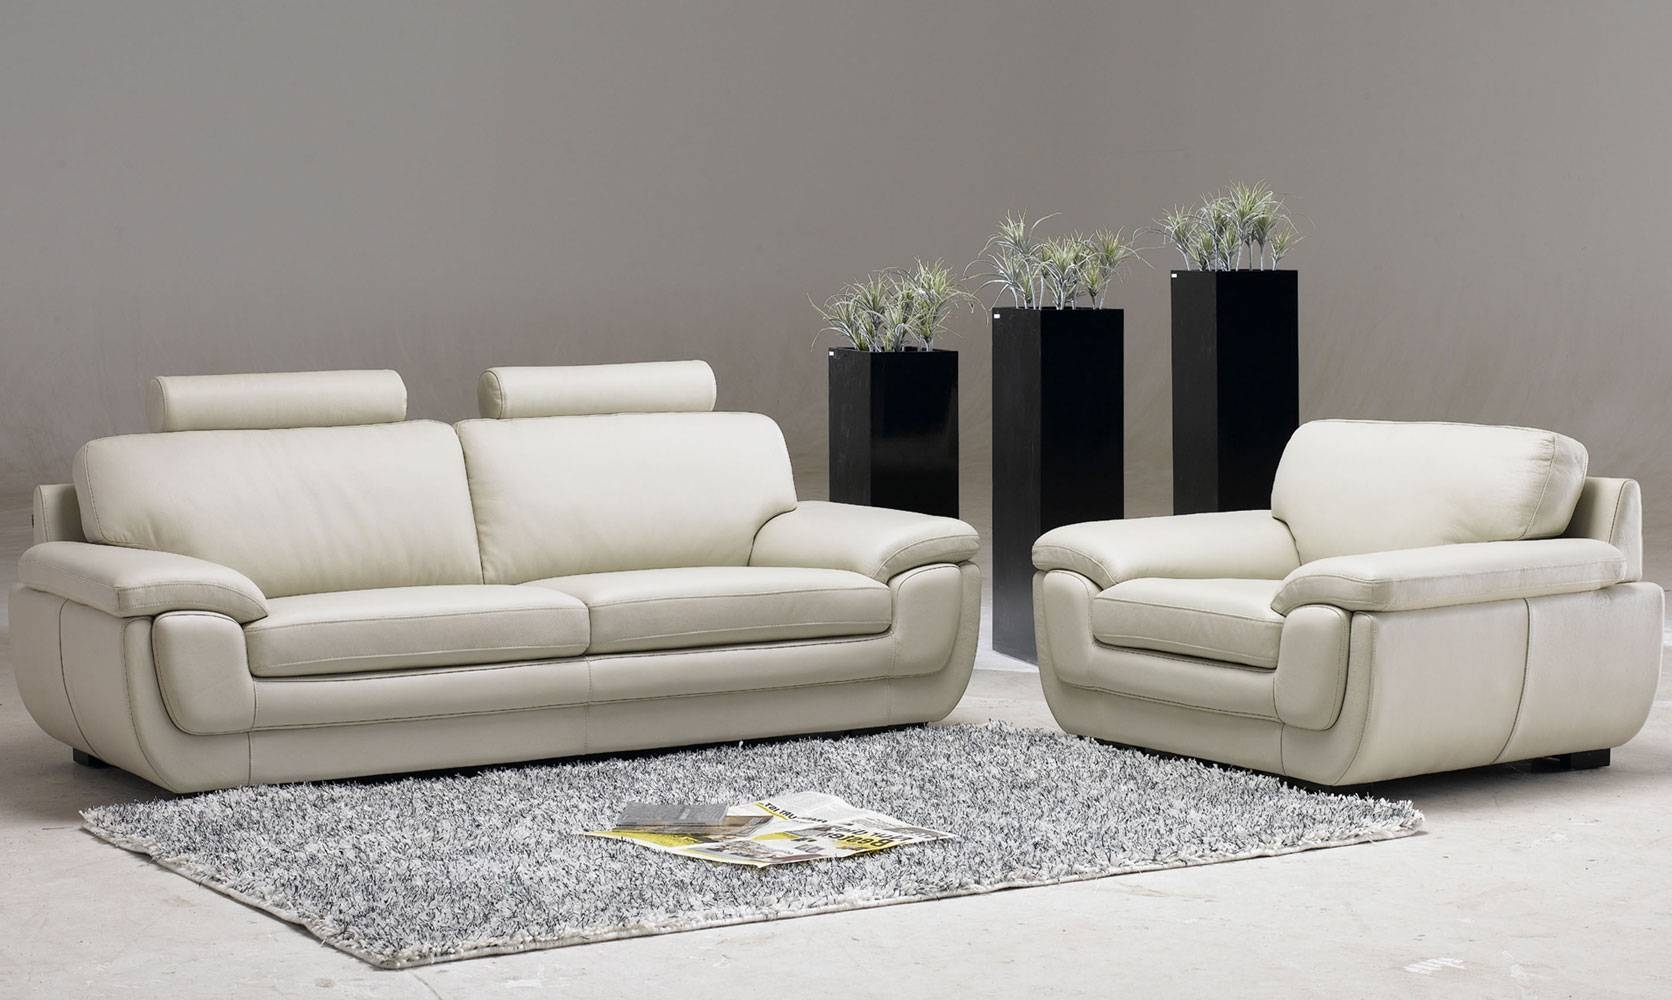 Living room sofa chair - Used Living Room Sets Home Design Ideas Within Living Room Sofa And Chair Sets